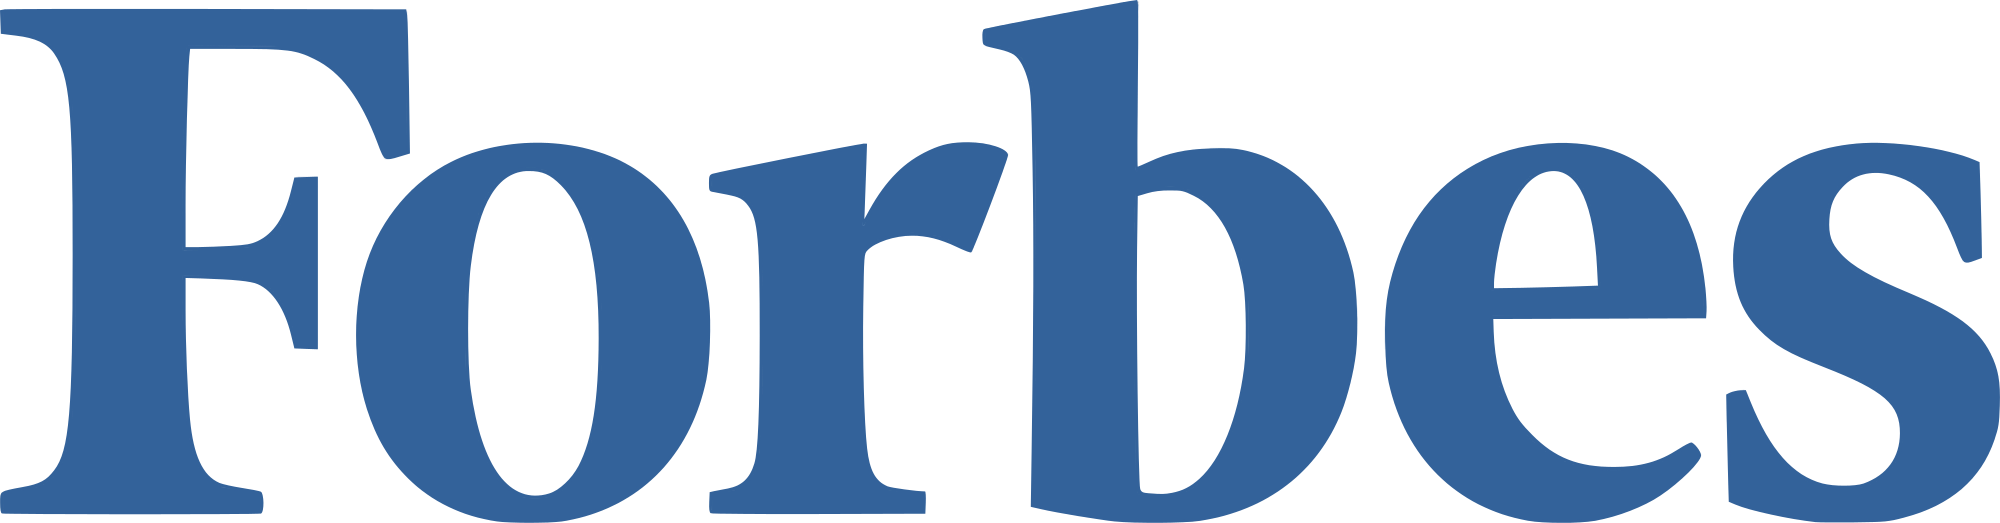 forbes_logo.png